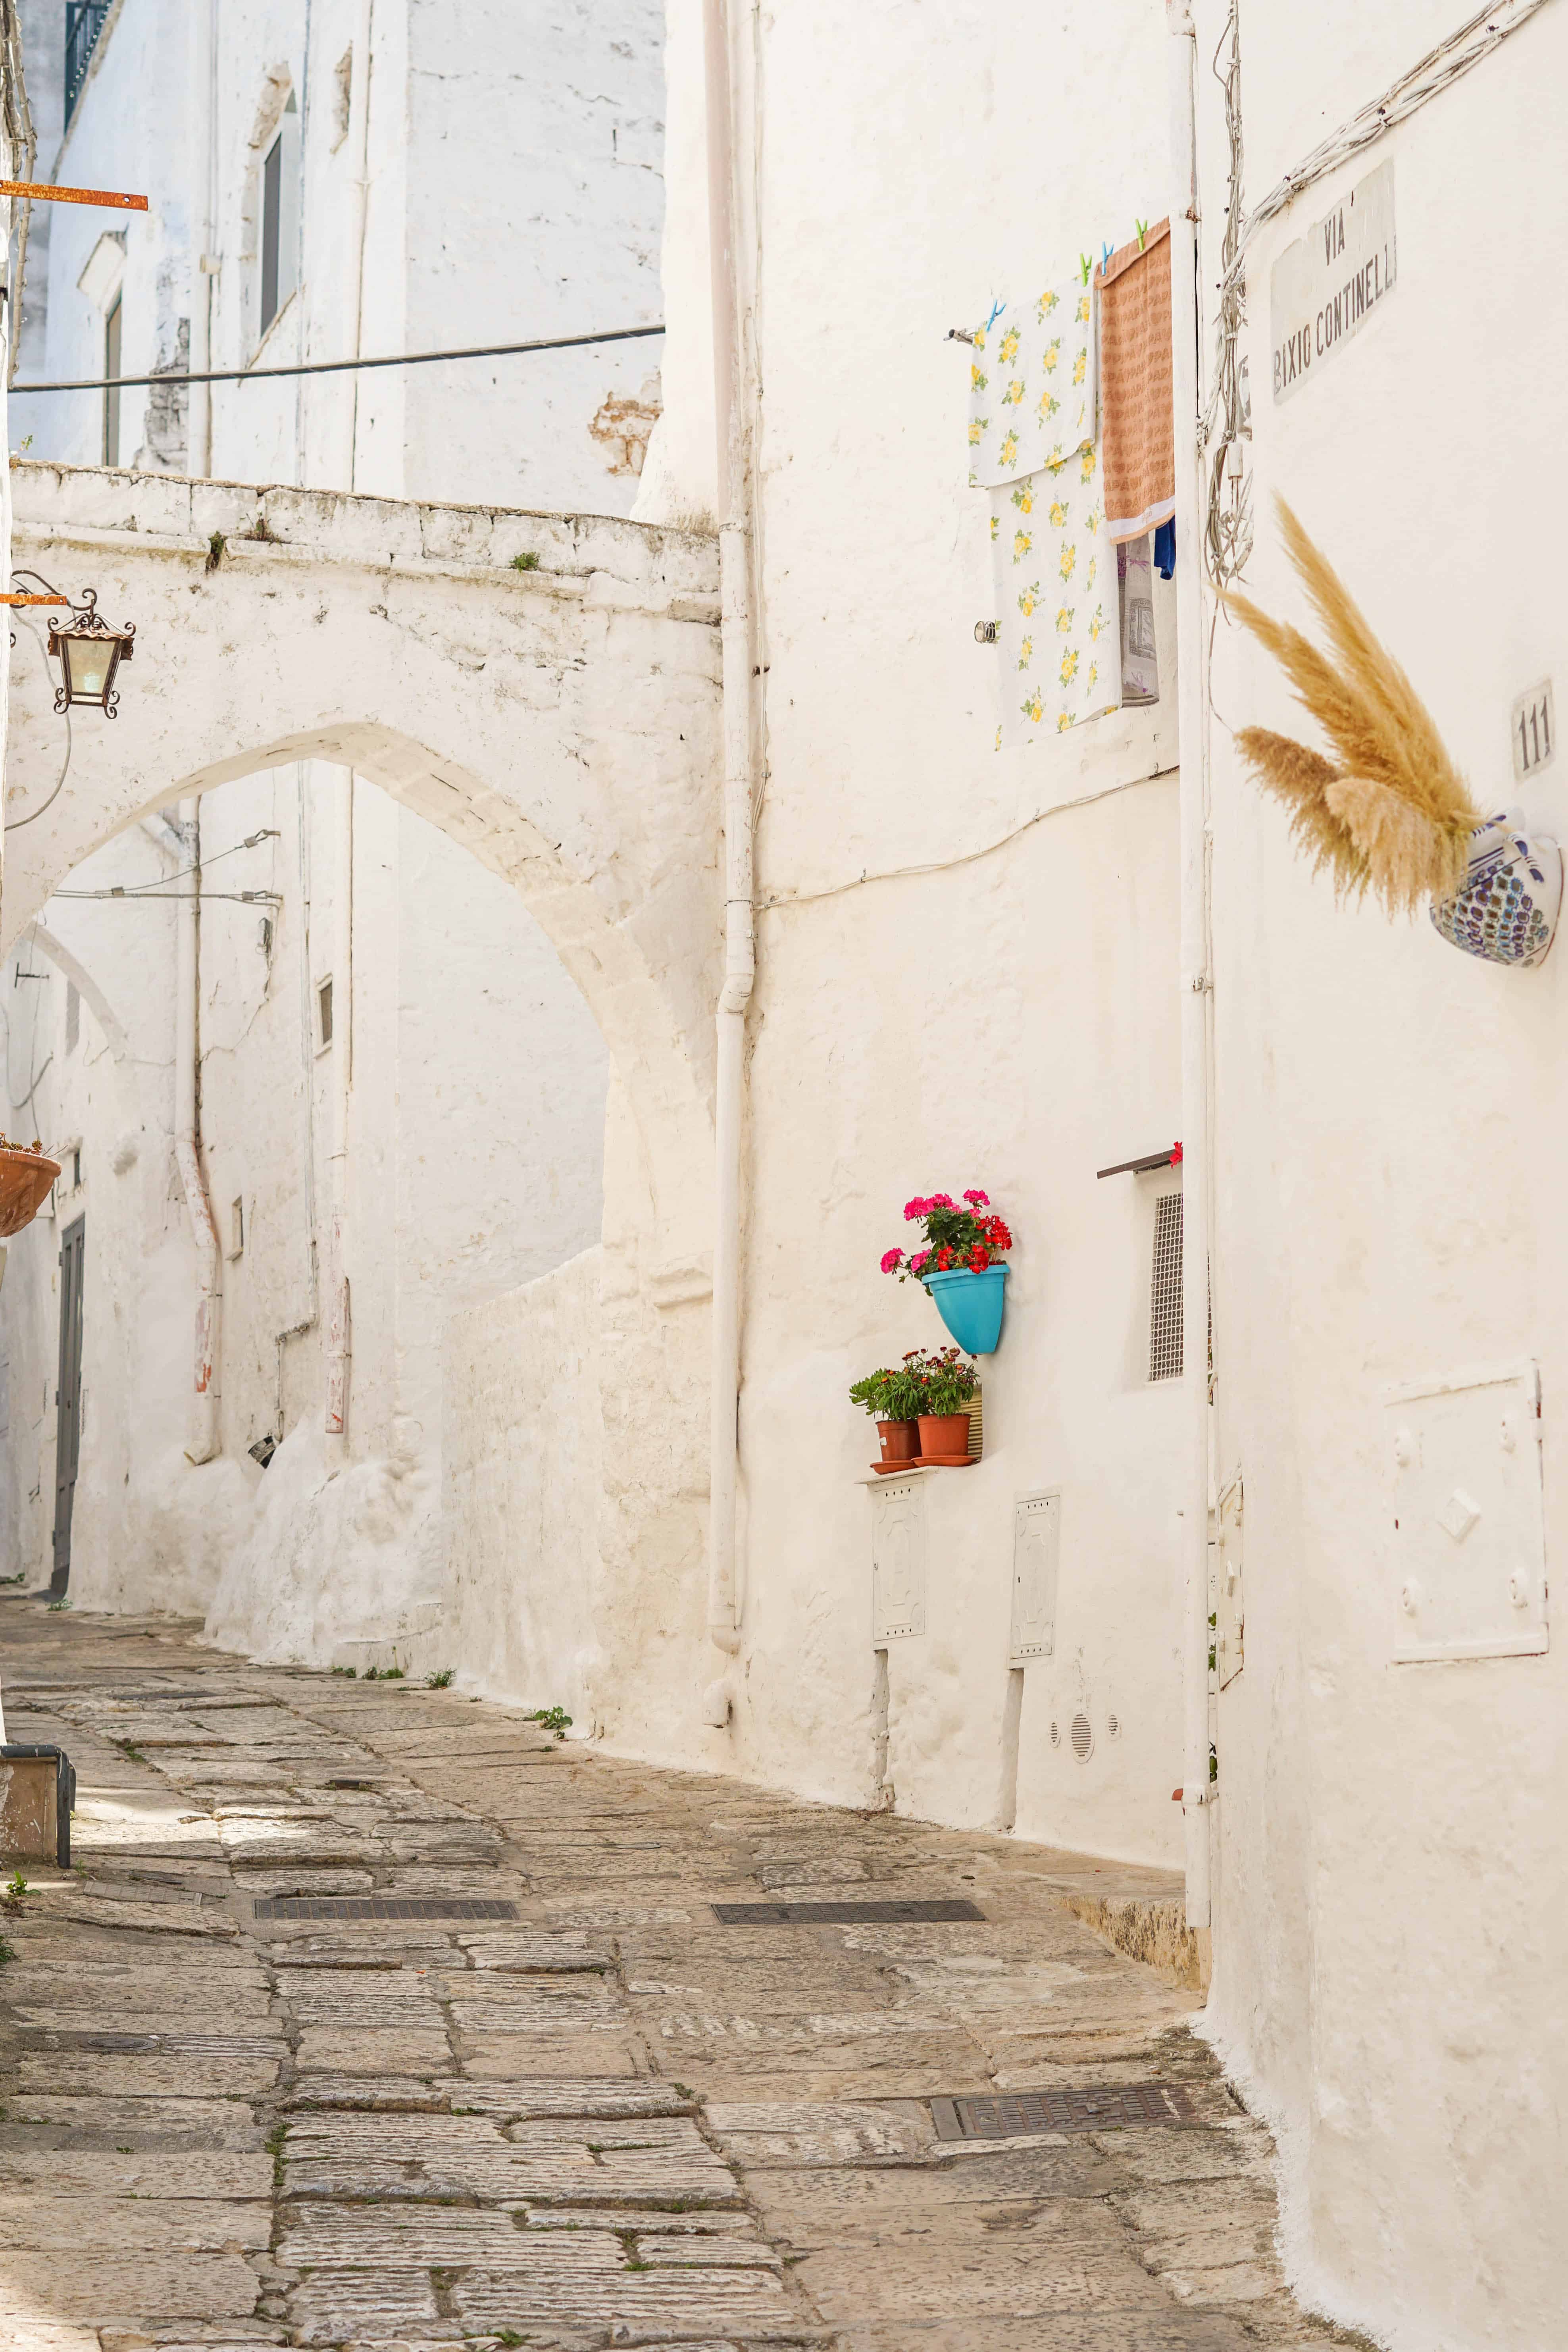 Hidden places in Italy: 4 days in Puglia. Discover one of the most beautiful places in Italy and embark on an Italy vacation you will never forget, without your usual tourist crowds. Read why you should put Puglia on your Italy travel destinations list, and read your perfect Puglia Italy itinerary. #puglia #italy #travel #itinerary